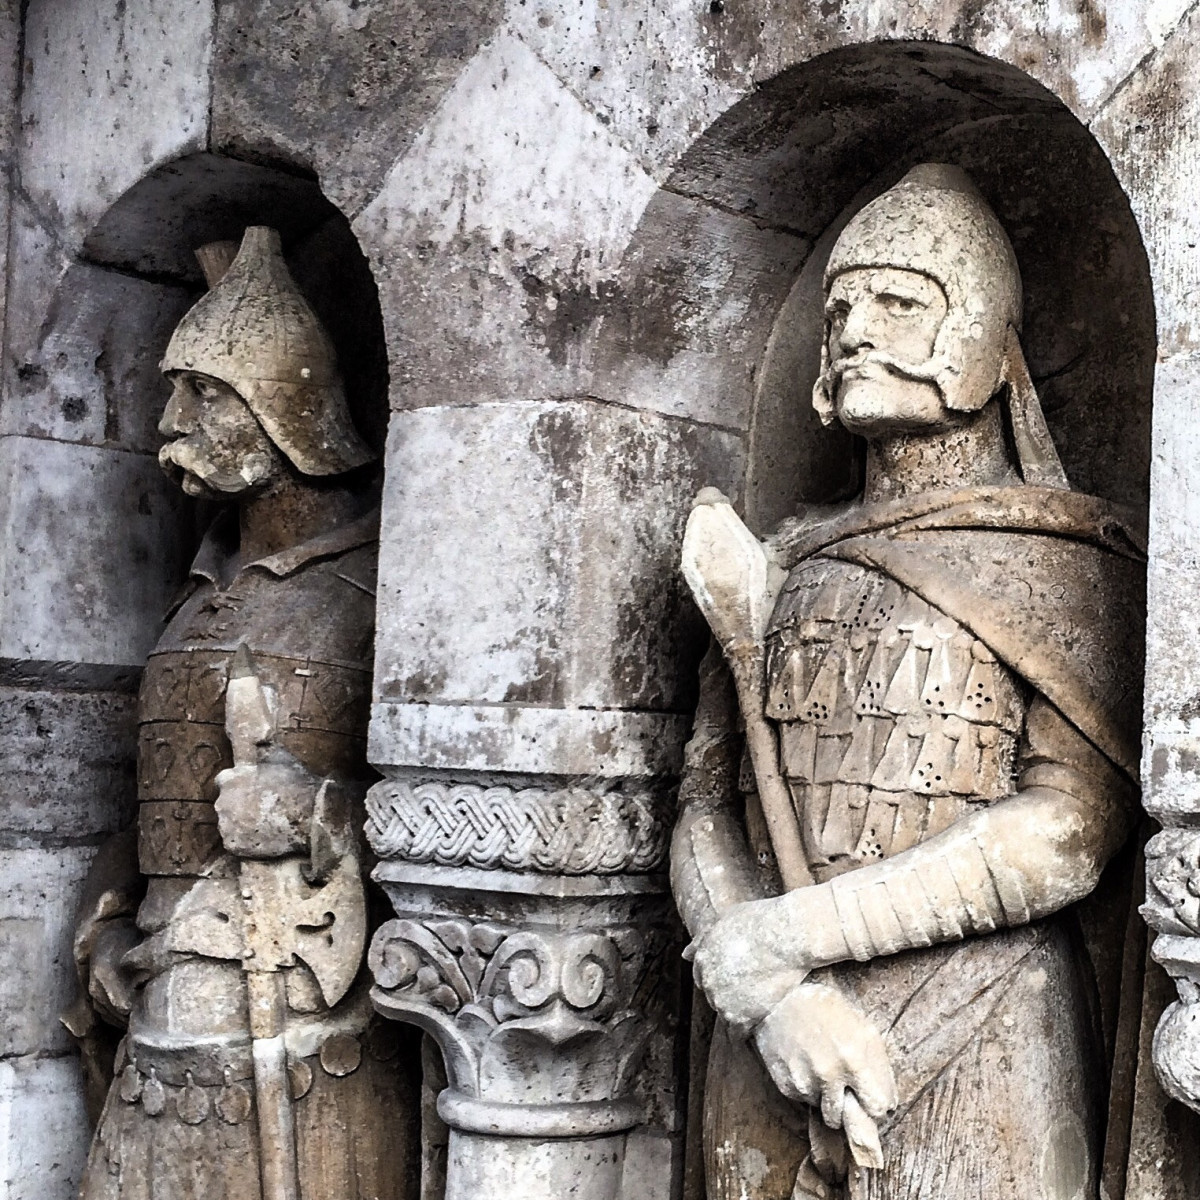 the-fishermans-bastion-with-the-statue-of-woody-harrelson-in-budapest